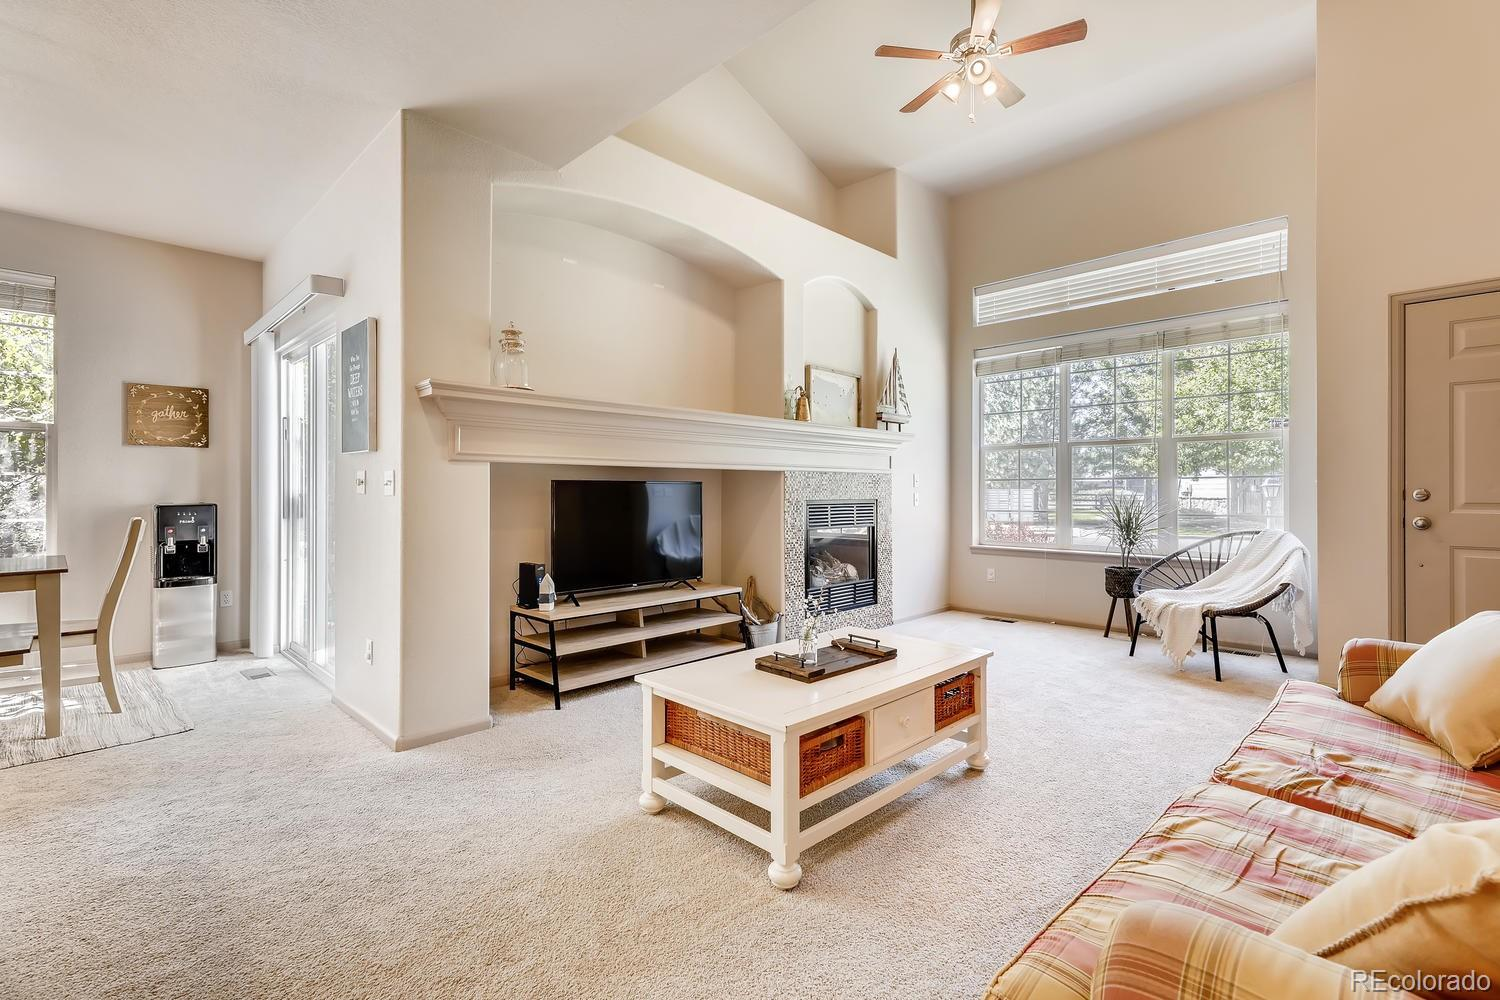 MLS# 5593651 - 2 - 2764 Whitetail Circle, Lafayette, CO 80026